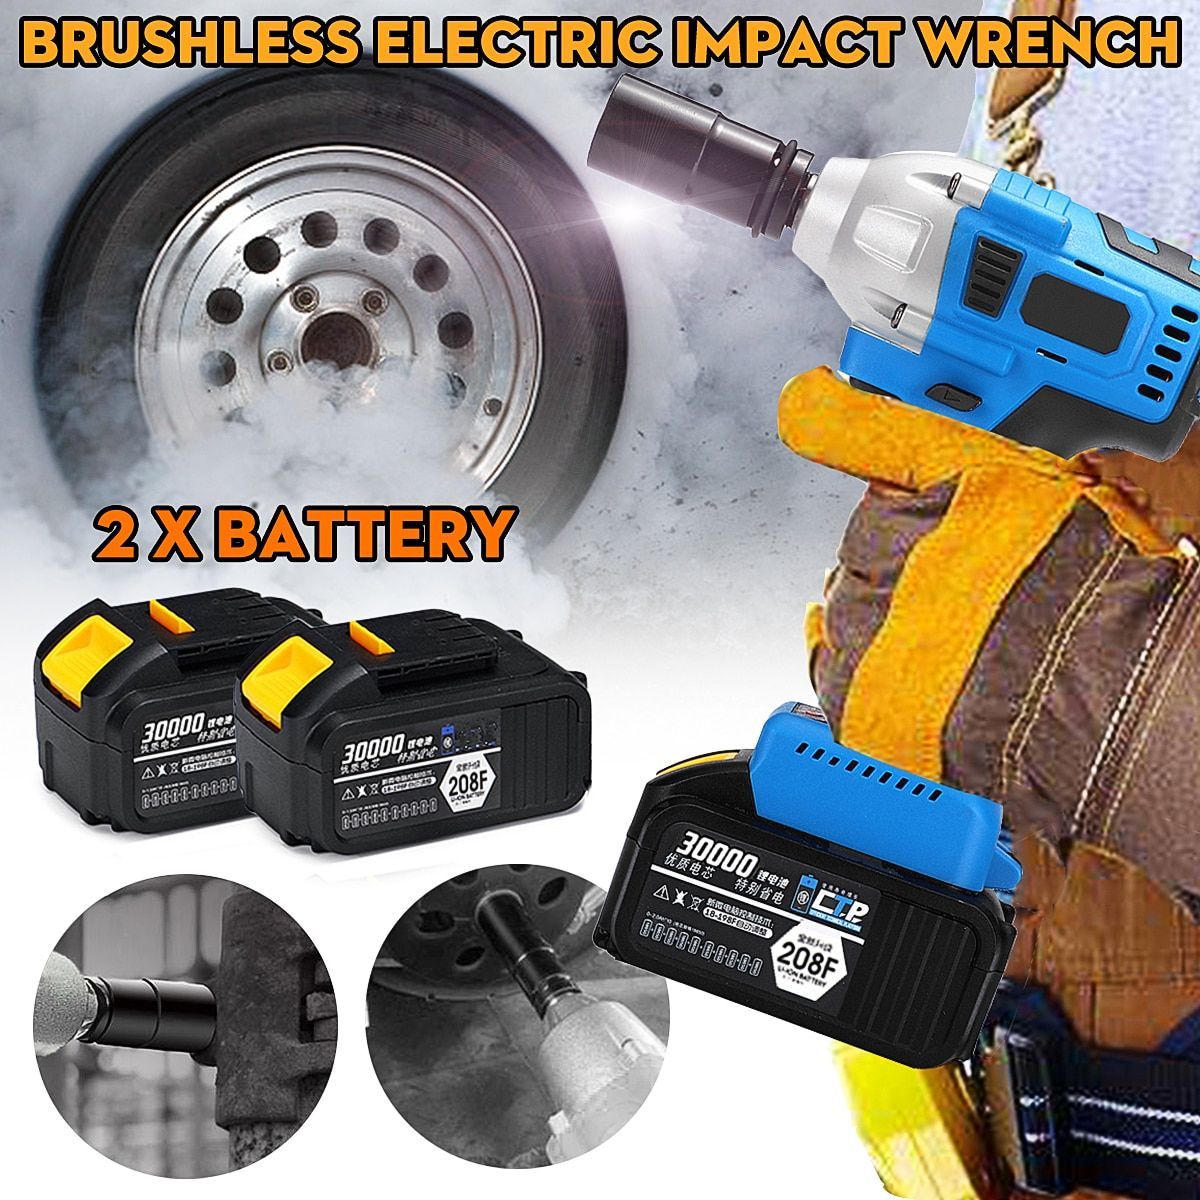 128/188/208F Brushless Cordless Wrench Impact Socket Tool With 2 Batteries 15000/20000/30000mAh Hand Drill Power Tools